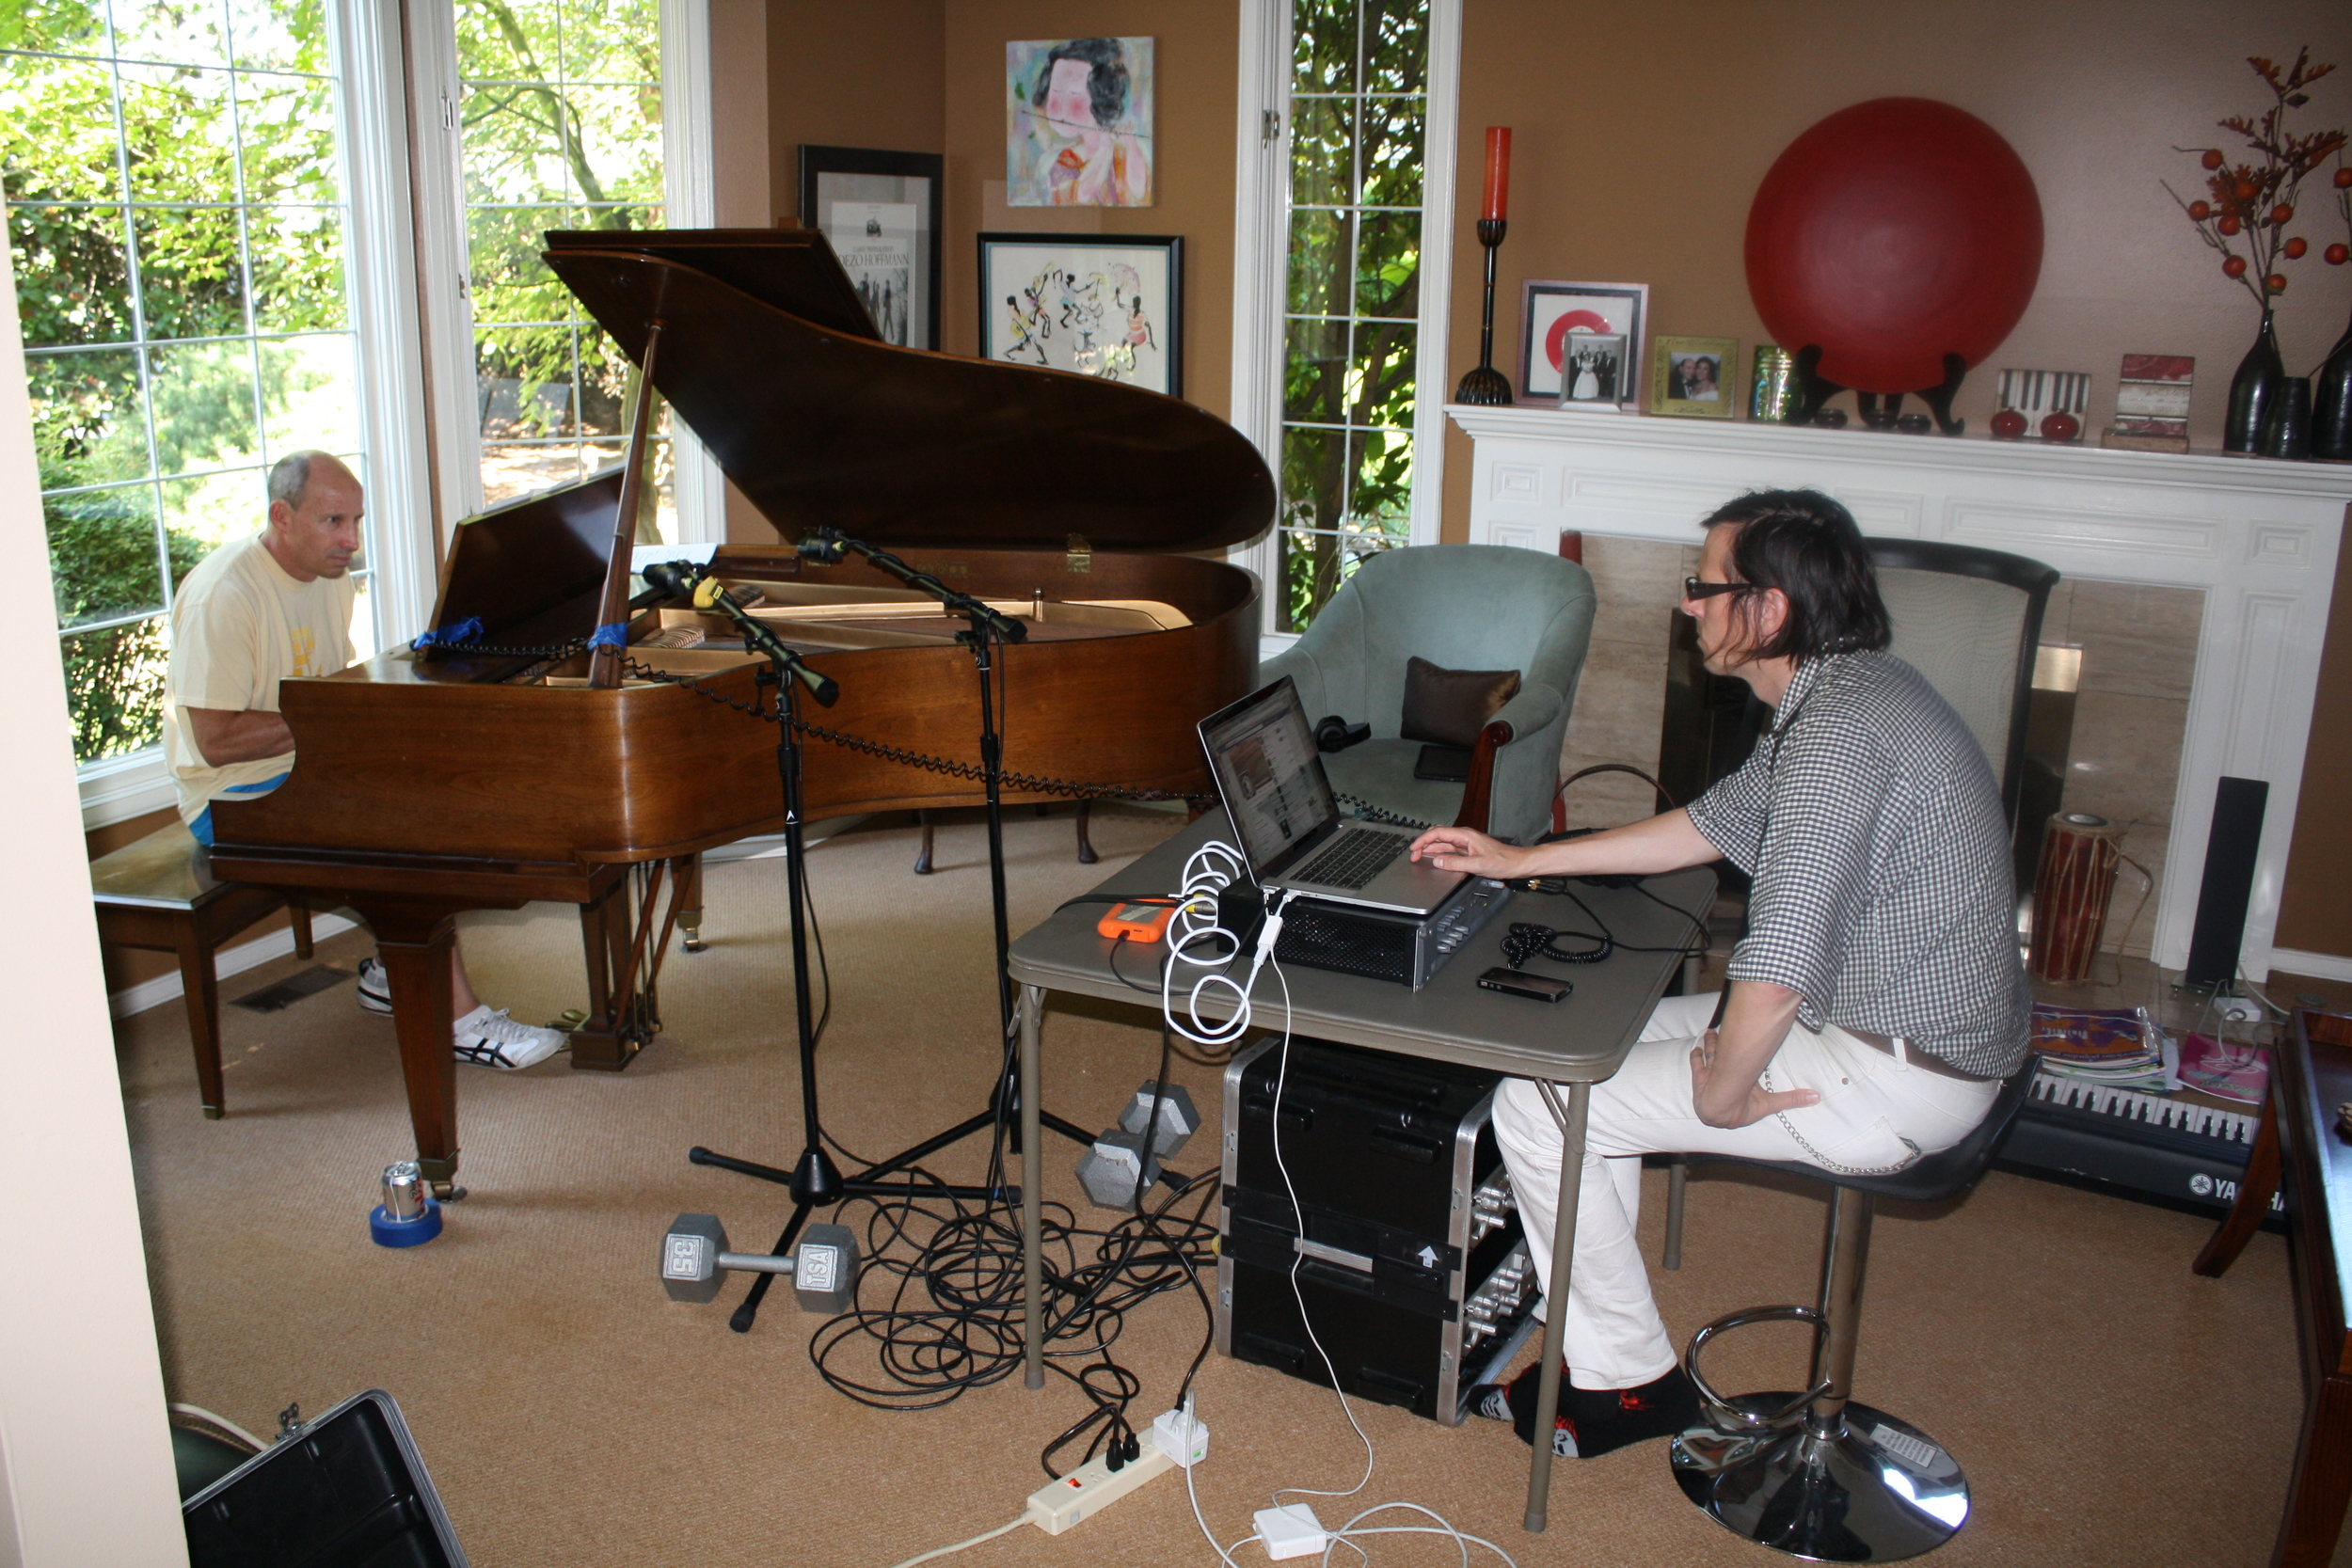 DAY 1: Ken and Mike Tracking at Mike's house